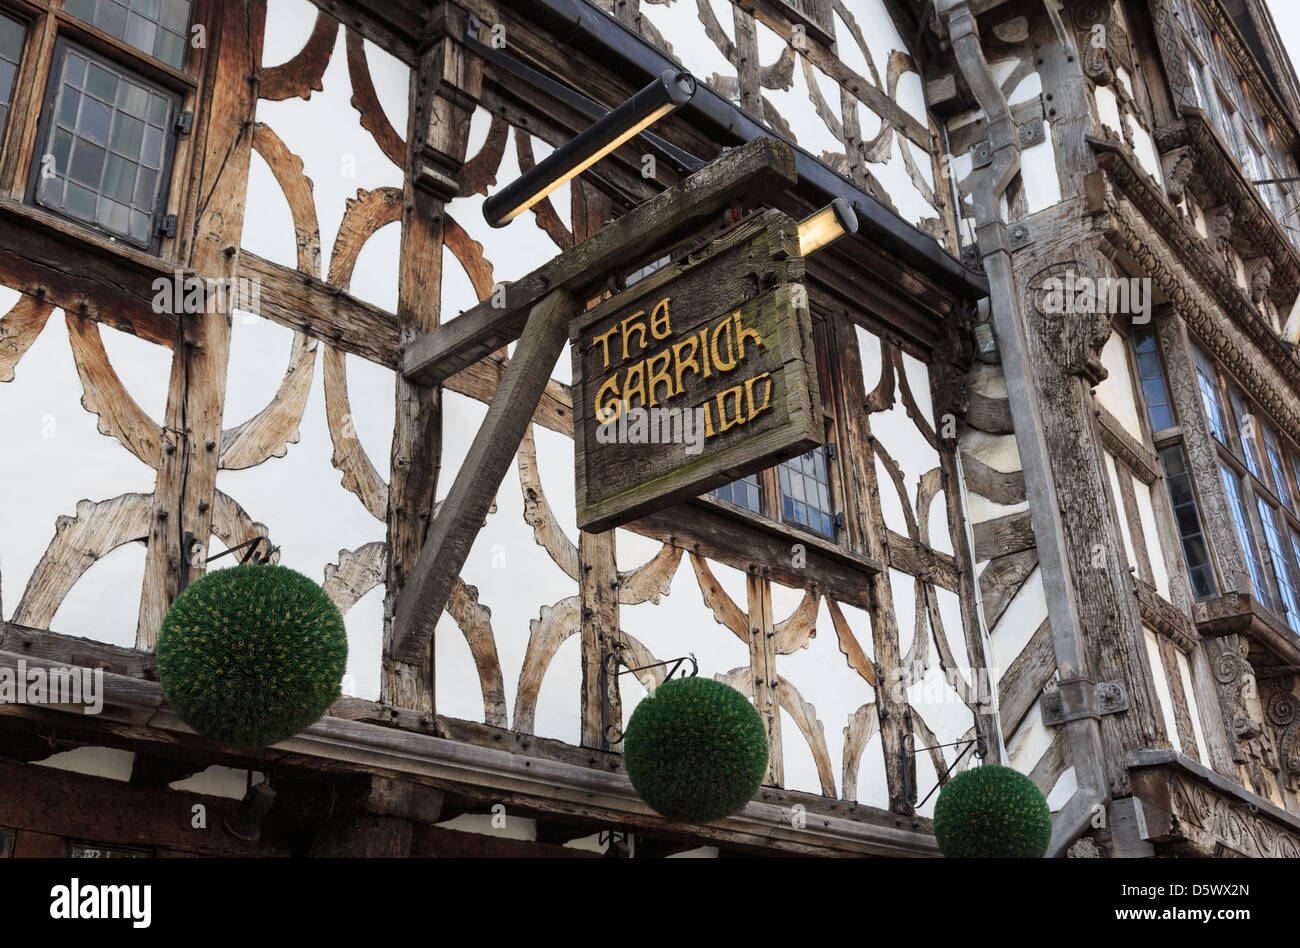 Pub sign for traditional 14th century Garrick Inn black and white timbered building. Stratford-upon-Avon Warwickshire - Stock Image